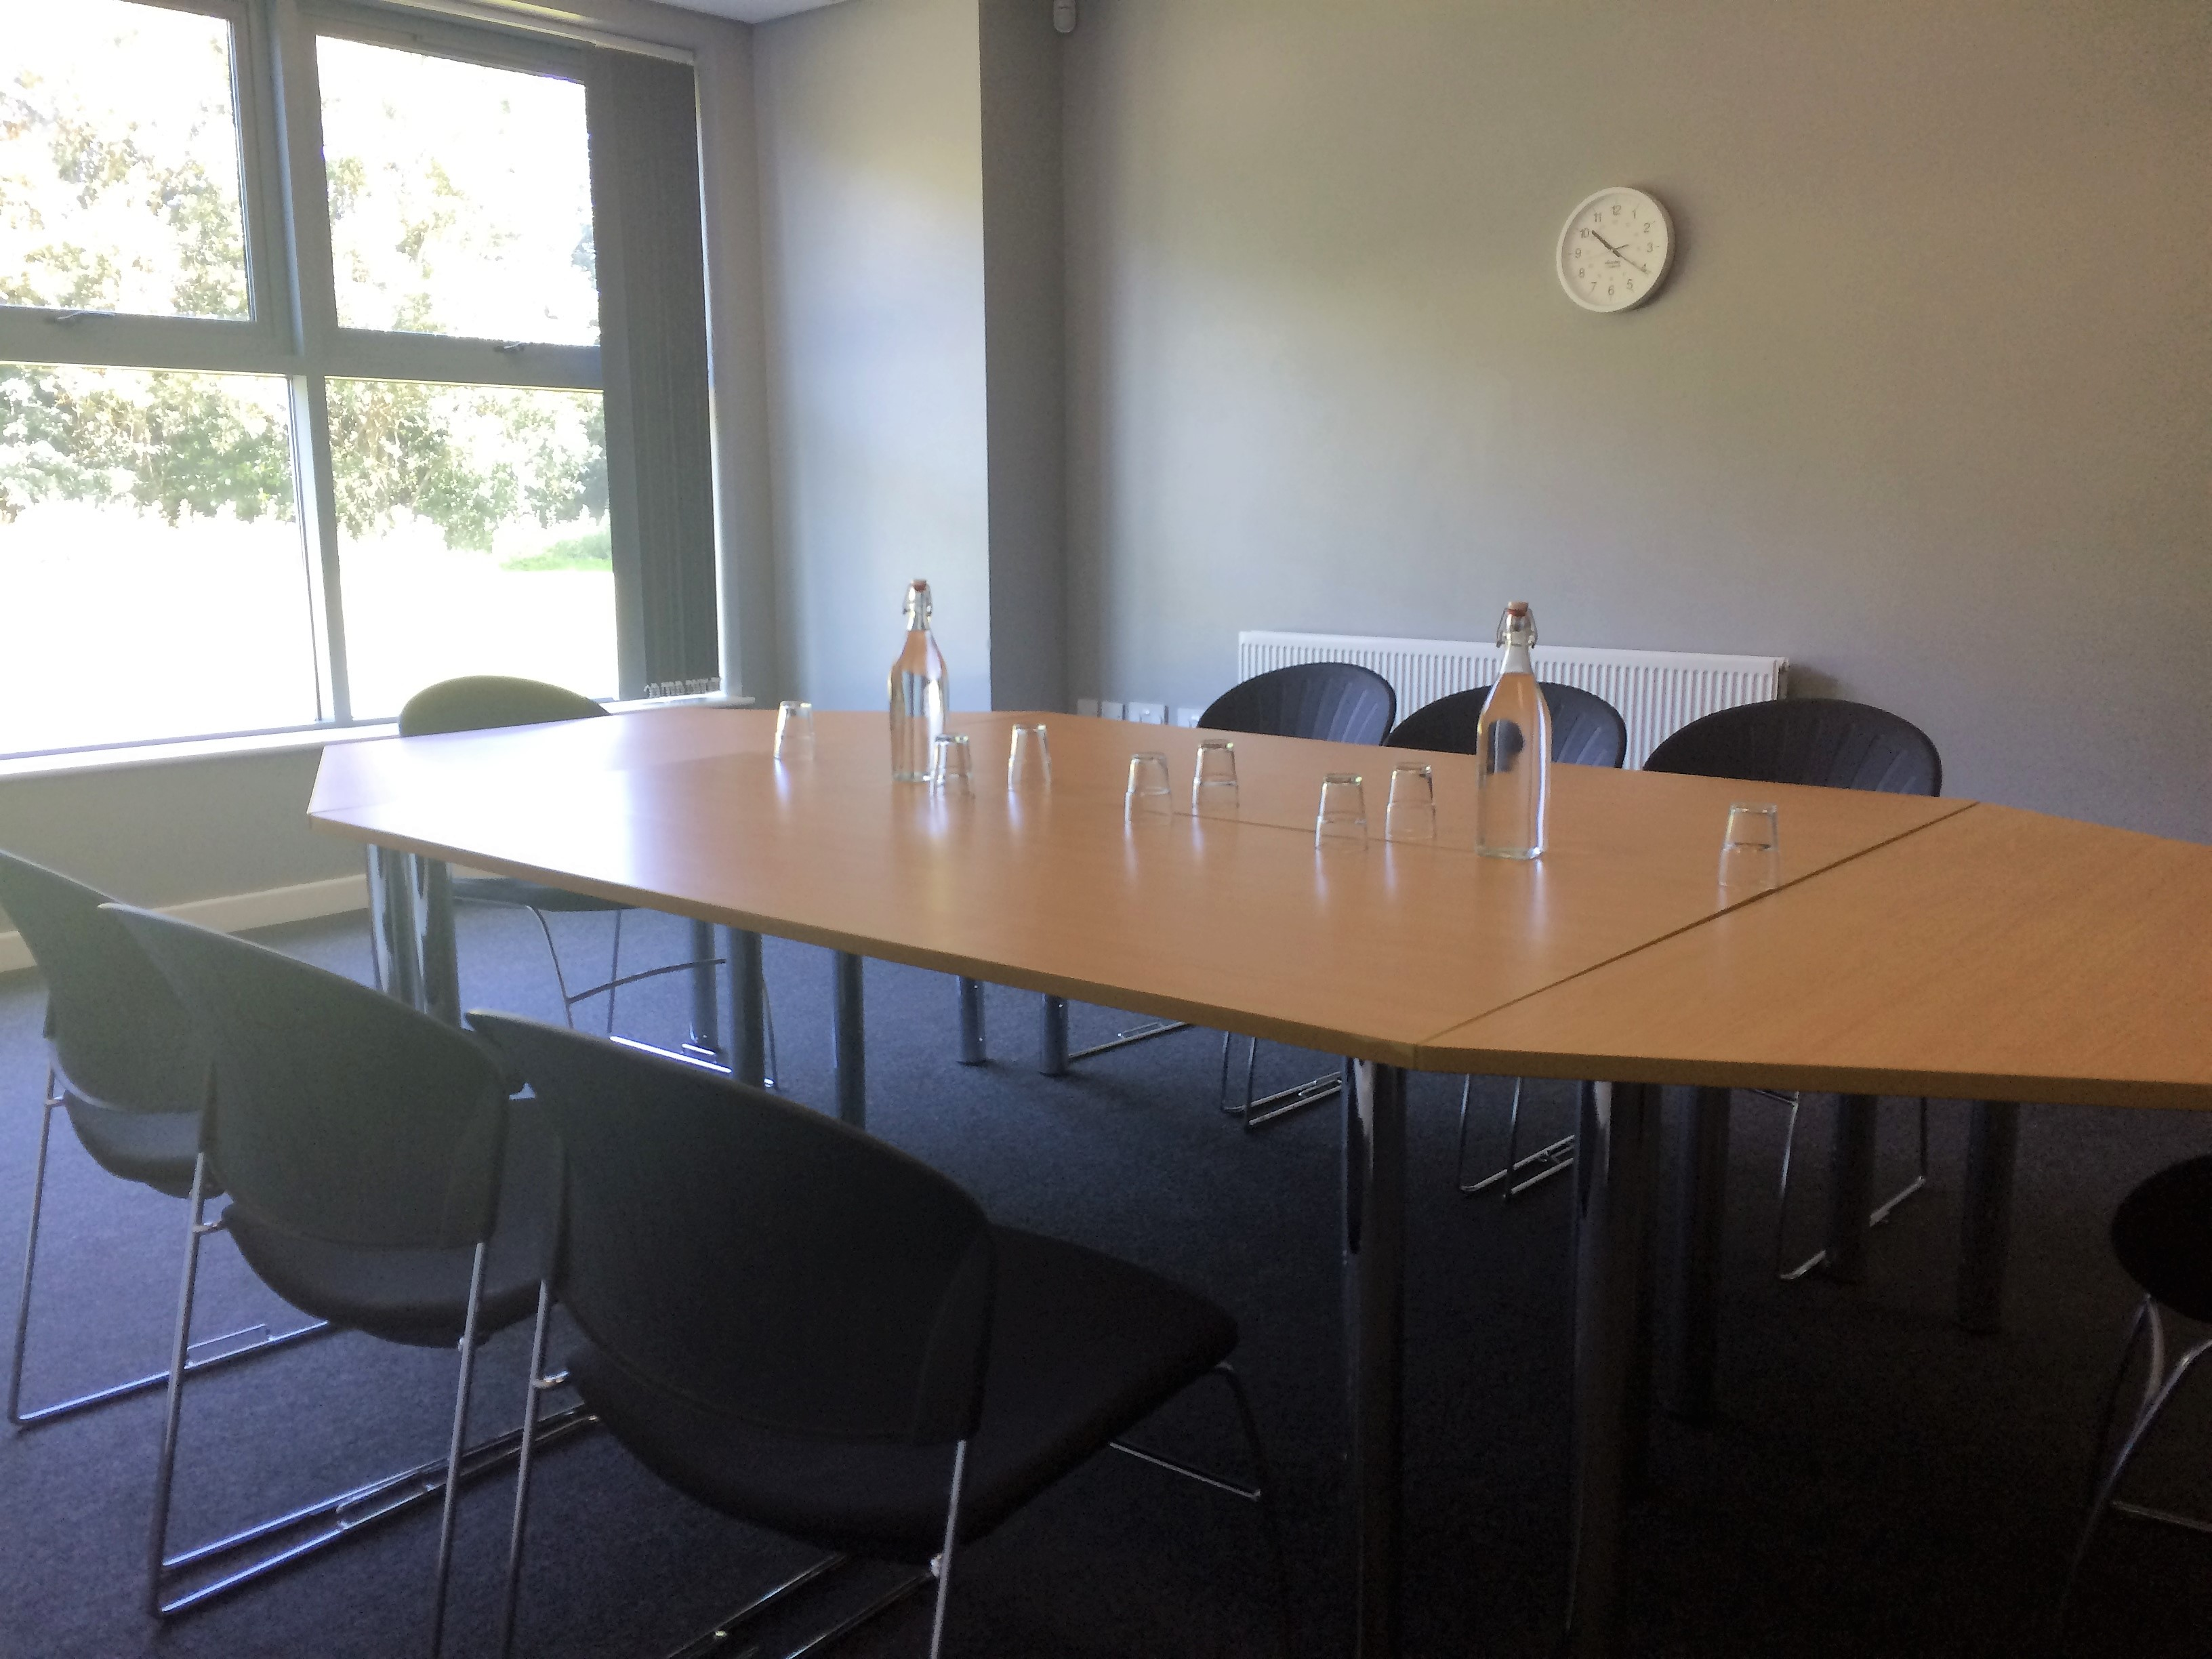 Xcel Centre offering 10% discount on conference rooms until Dec 31st